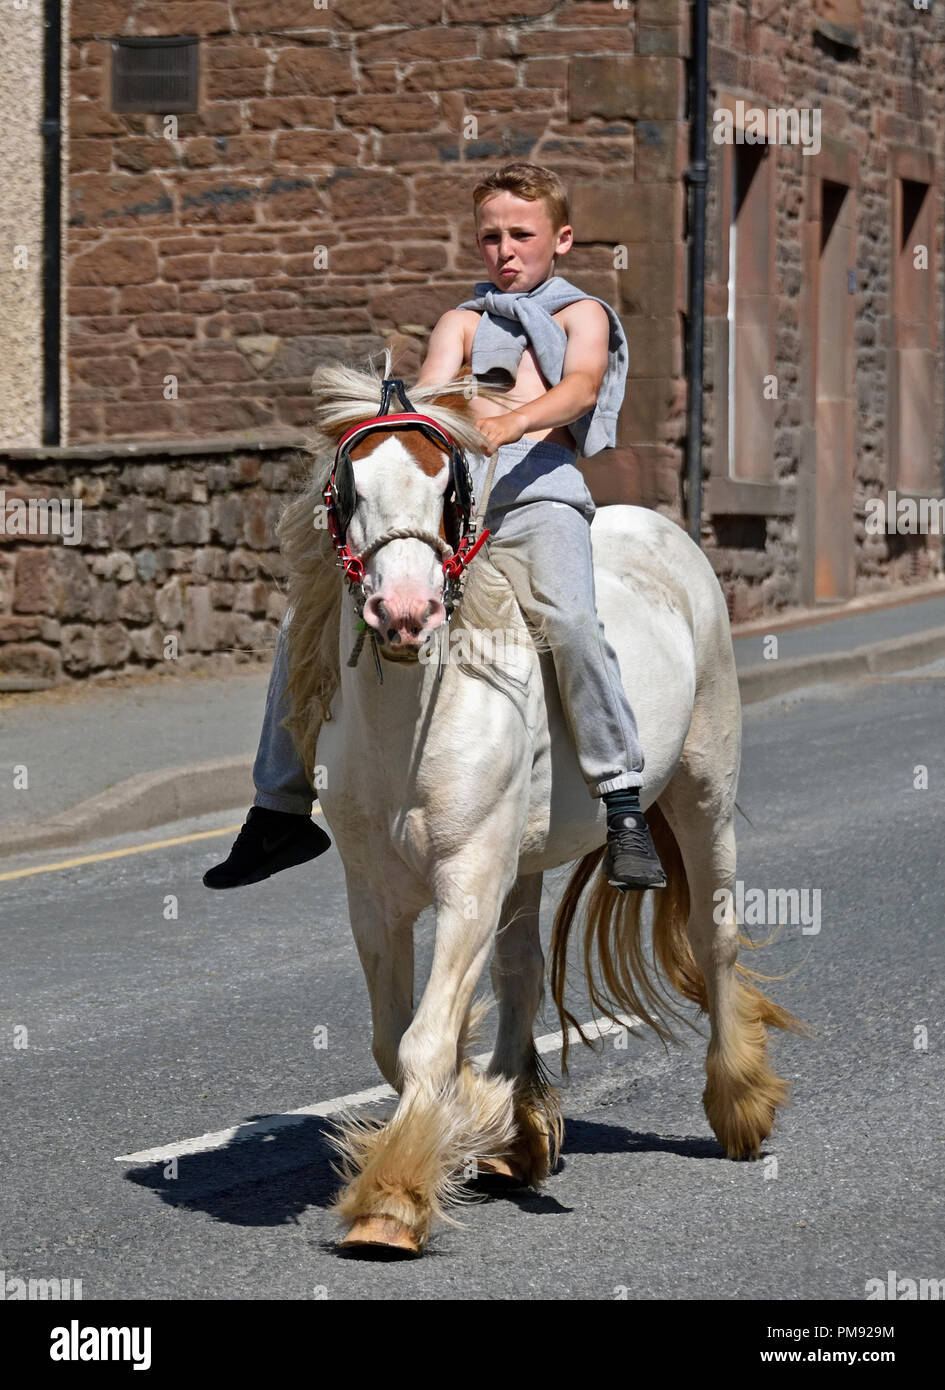 Gypsy Traveller boy riding horse. Appleby Horse Fair 2018. The Sands, Appleby-in-Westmorland, Cumbria, England, United Kingdom, Europe. - Stock Image